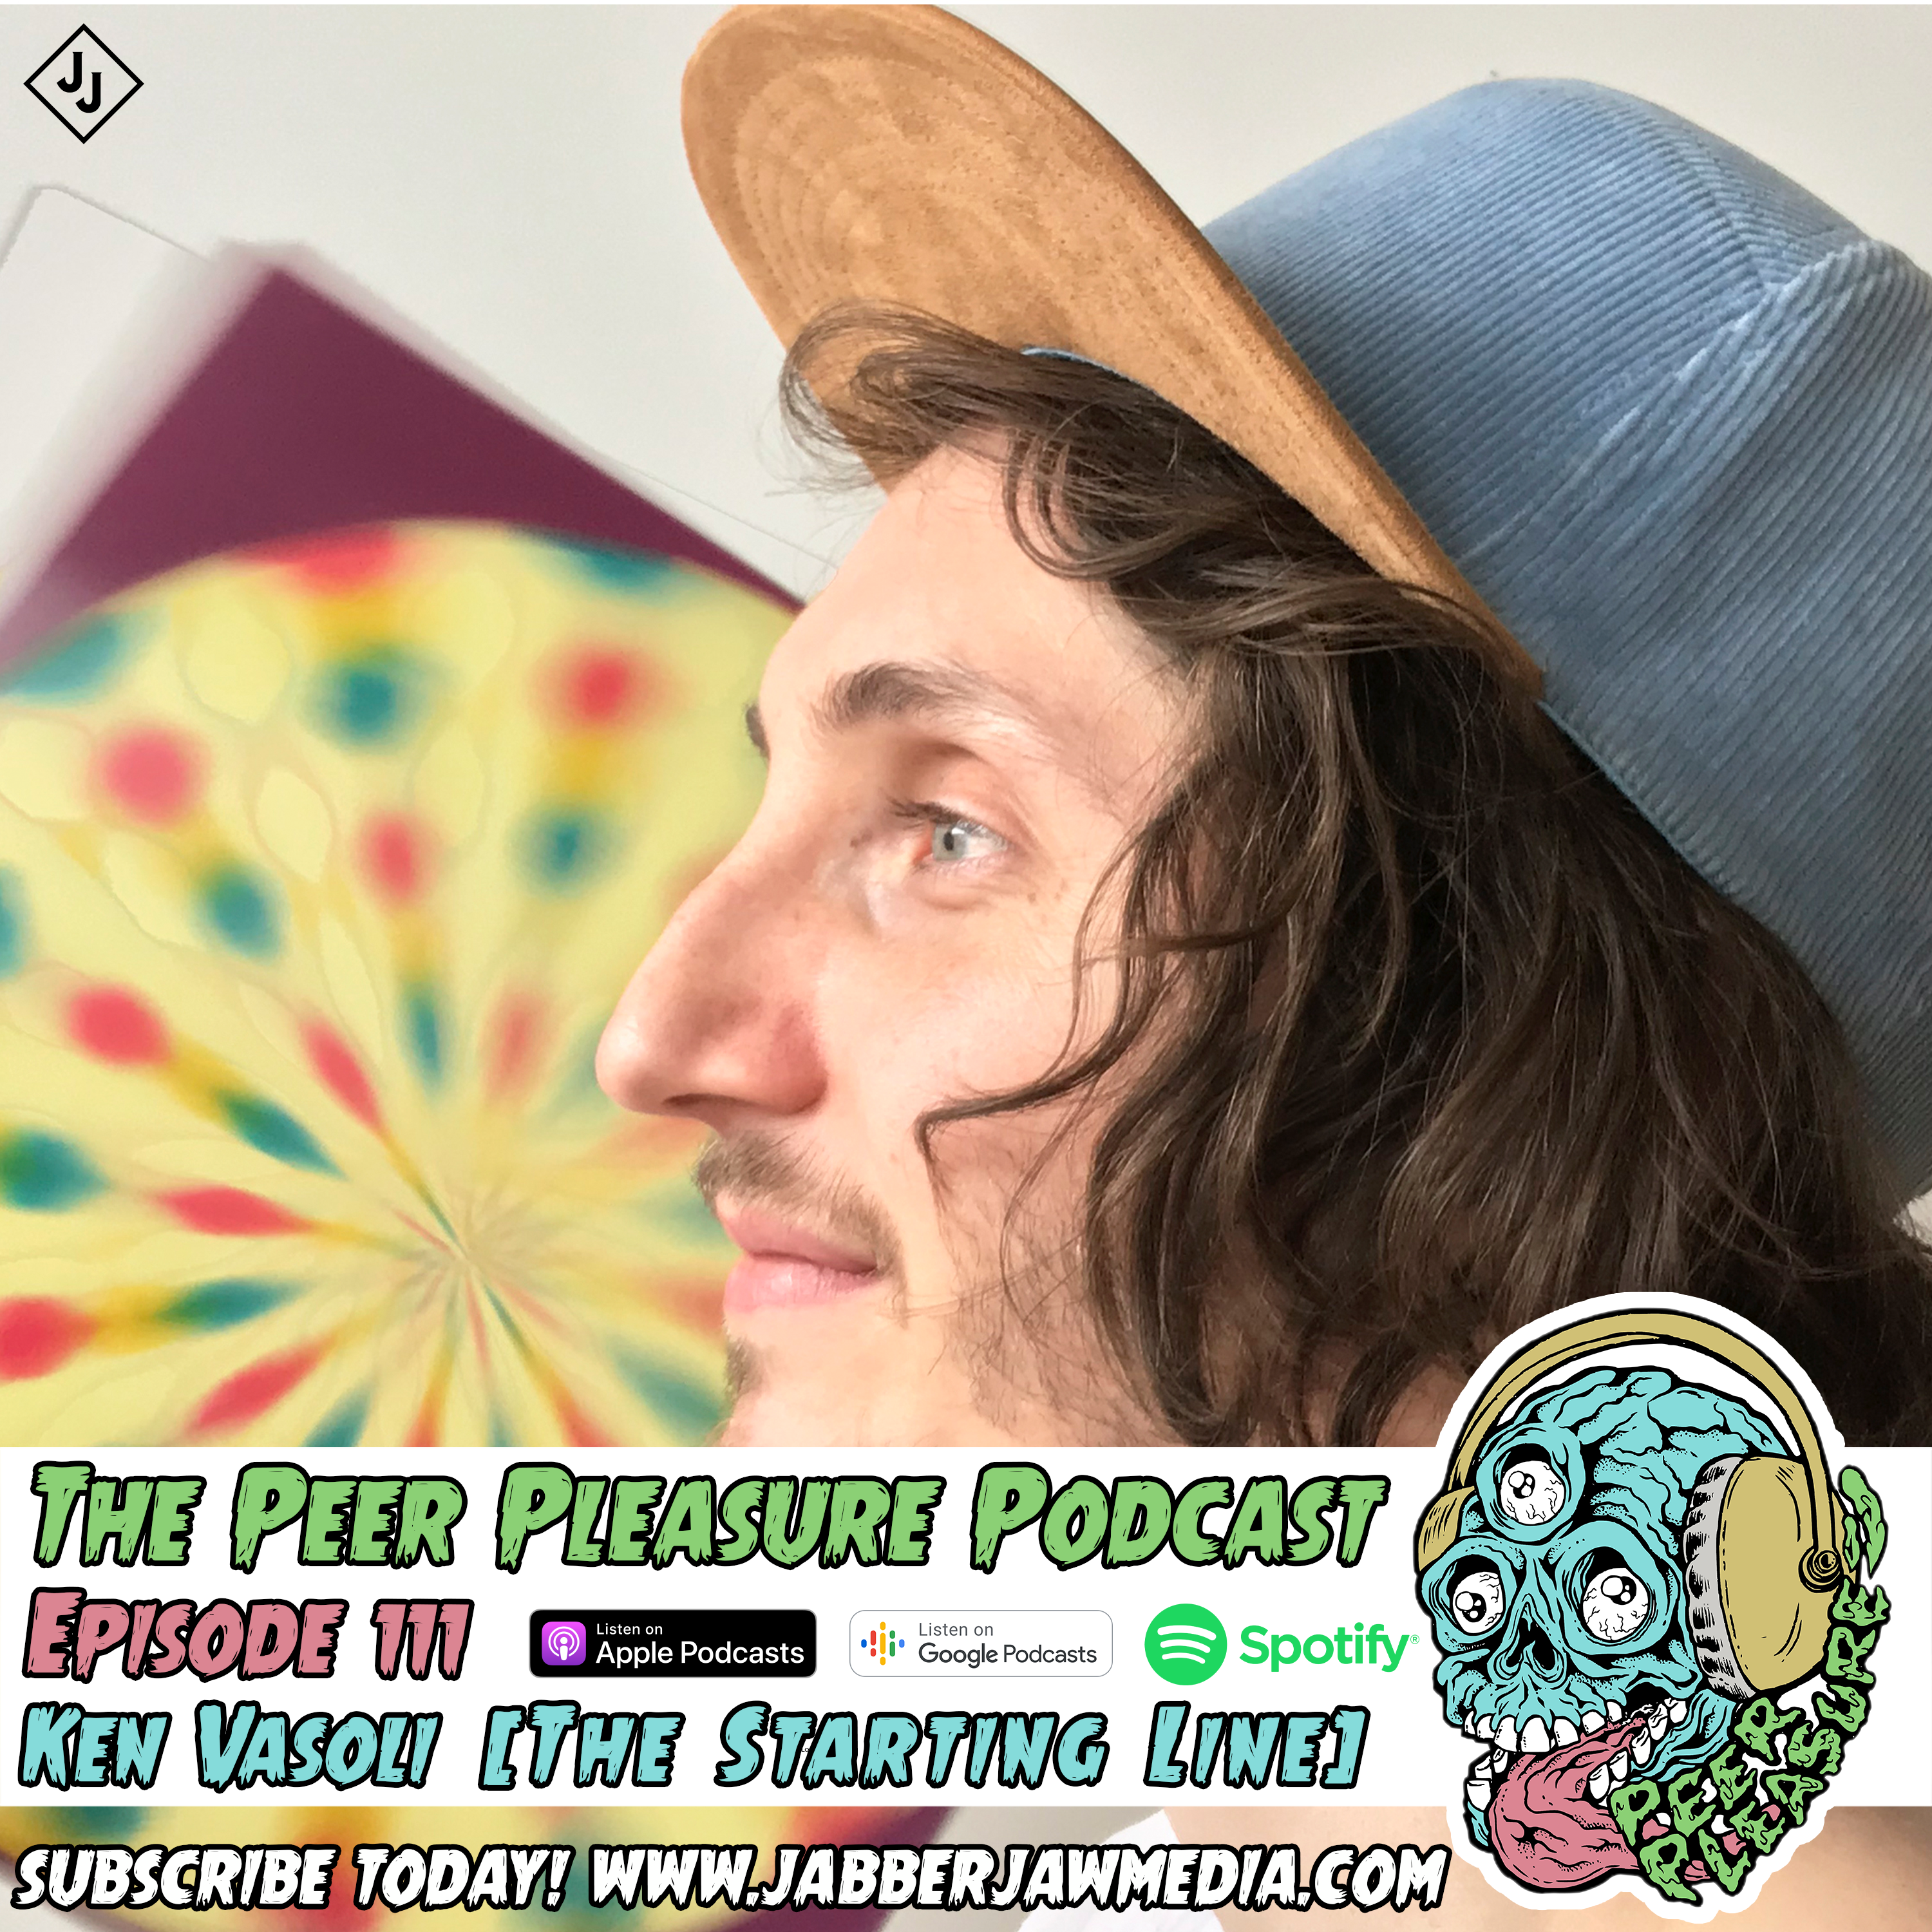 The Peer Pleasure Podcast